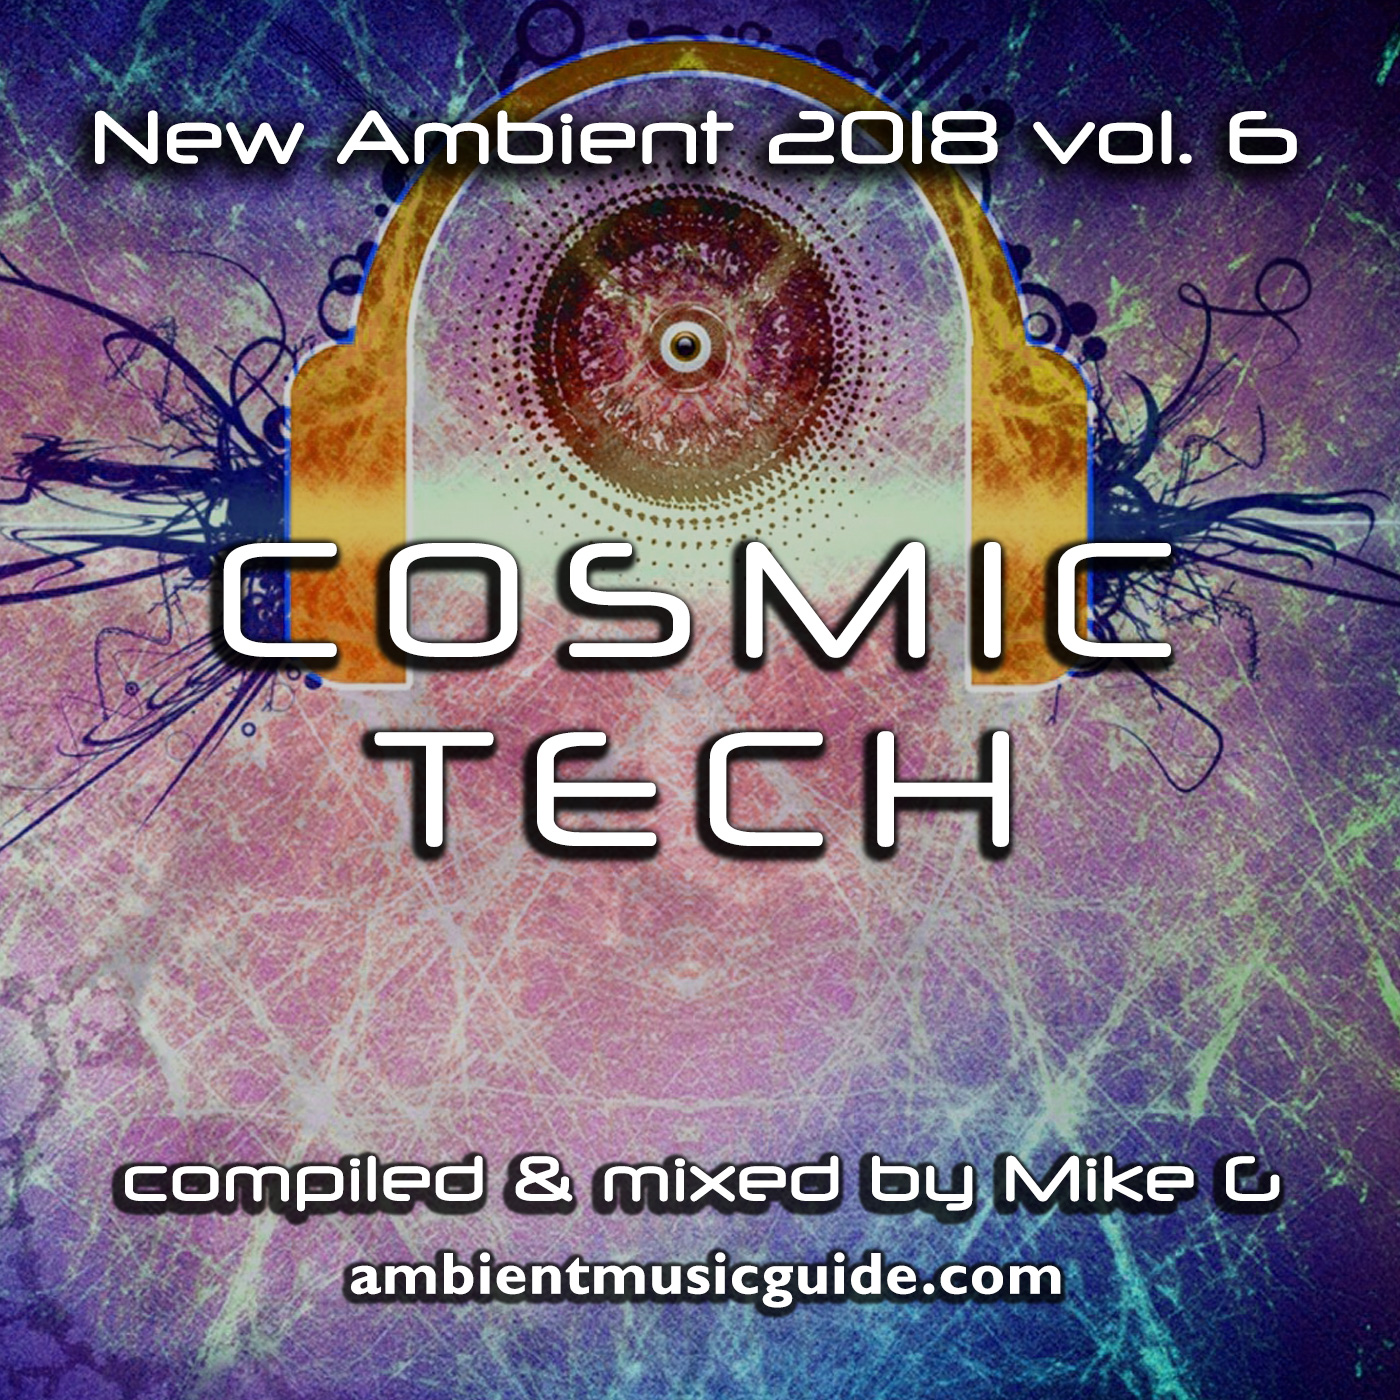 Cosmic Tech - New Ambient 2018 vol. 6 mixed by Mike G